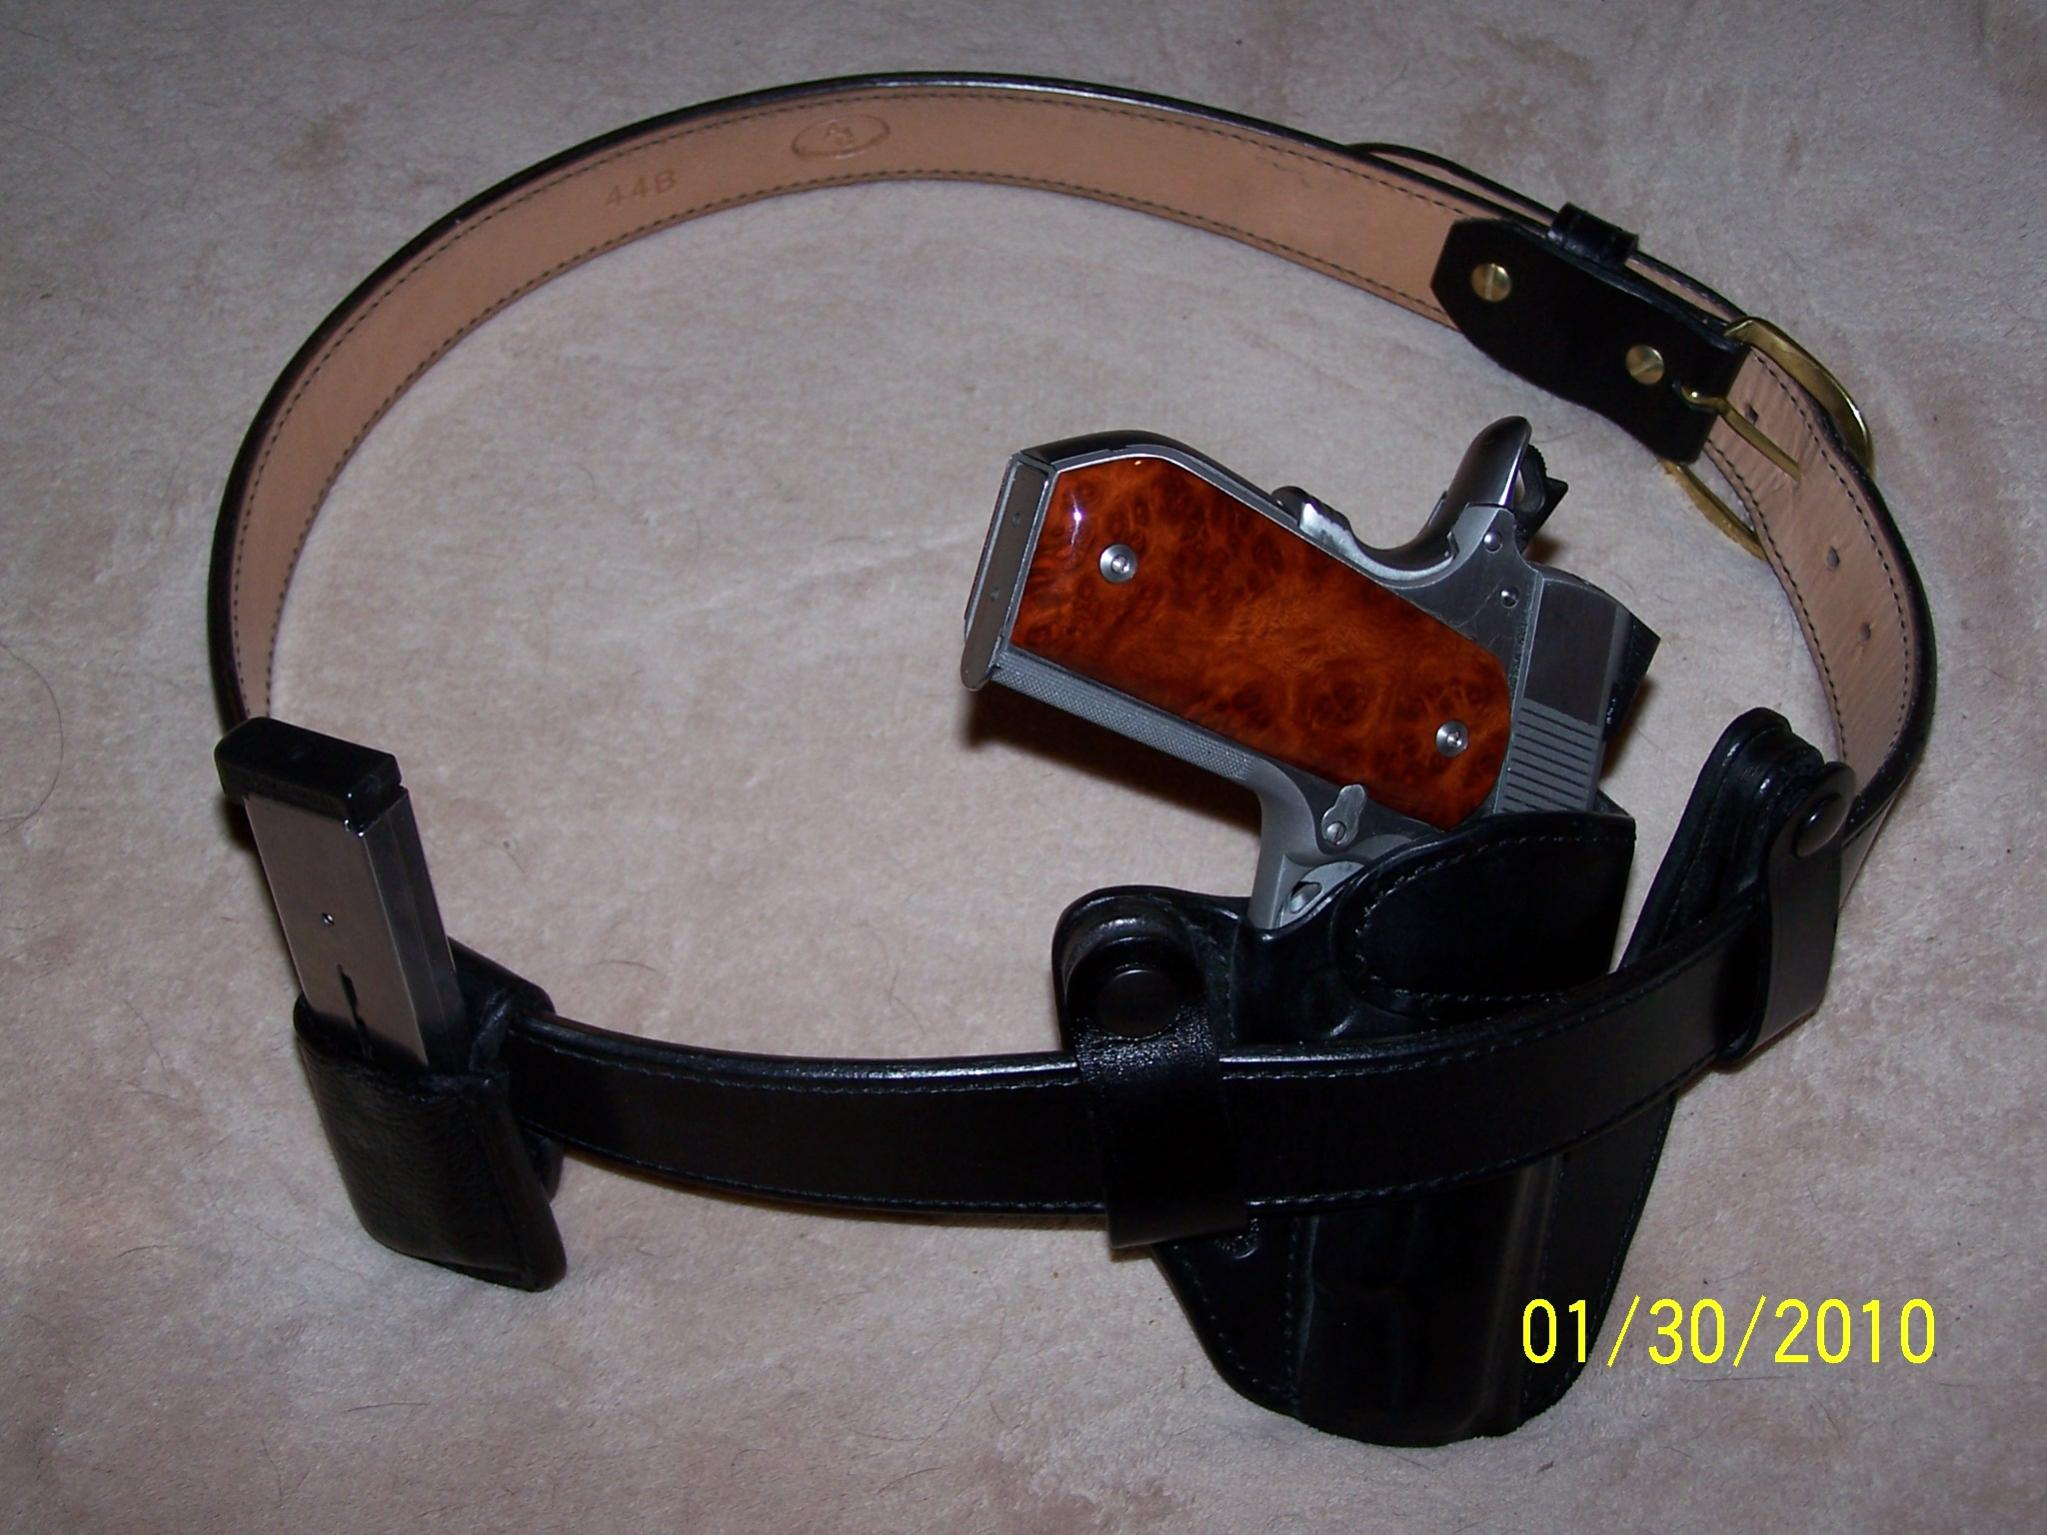 Let's See Your Pic's - How You Carry Concealed.-cbob-001.jpg